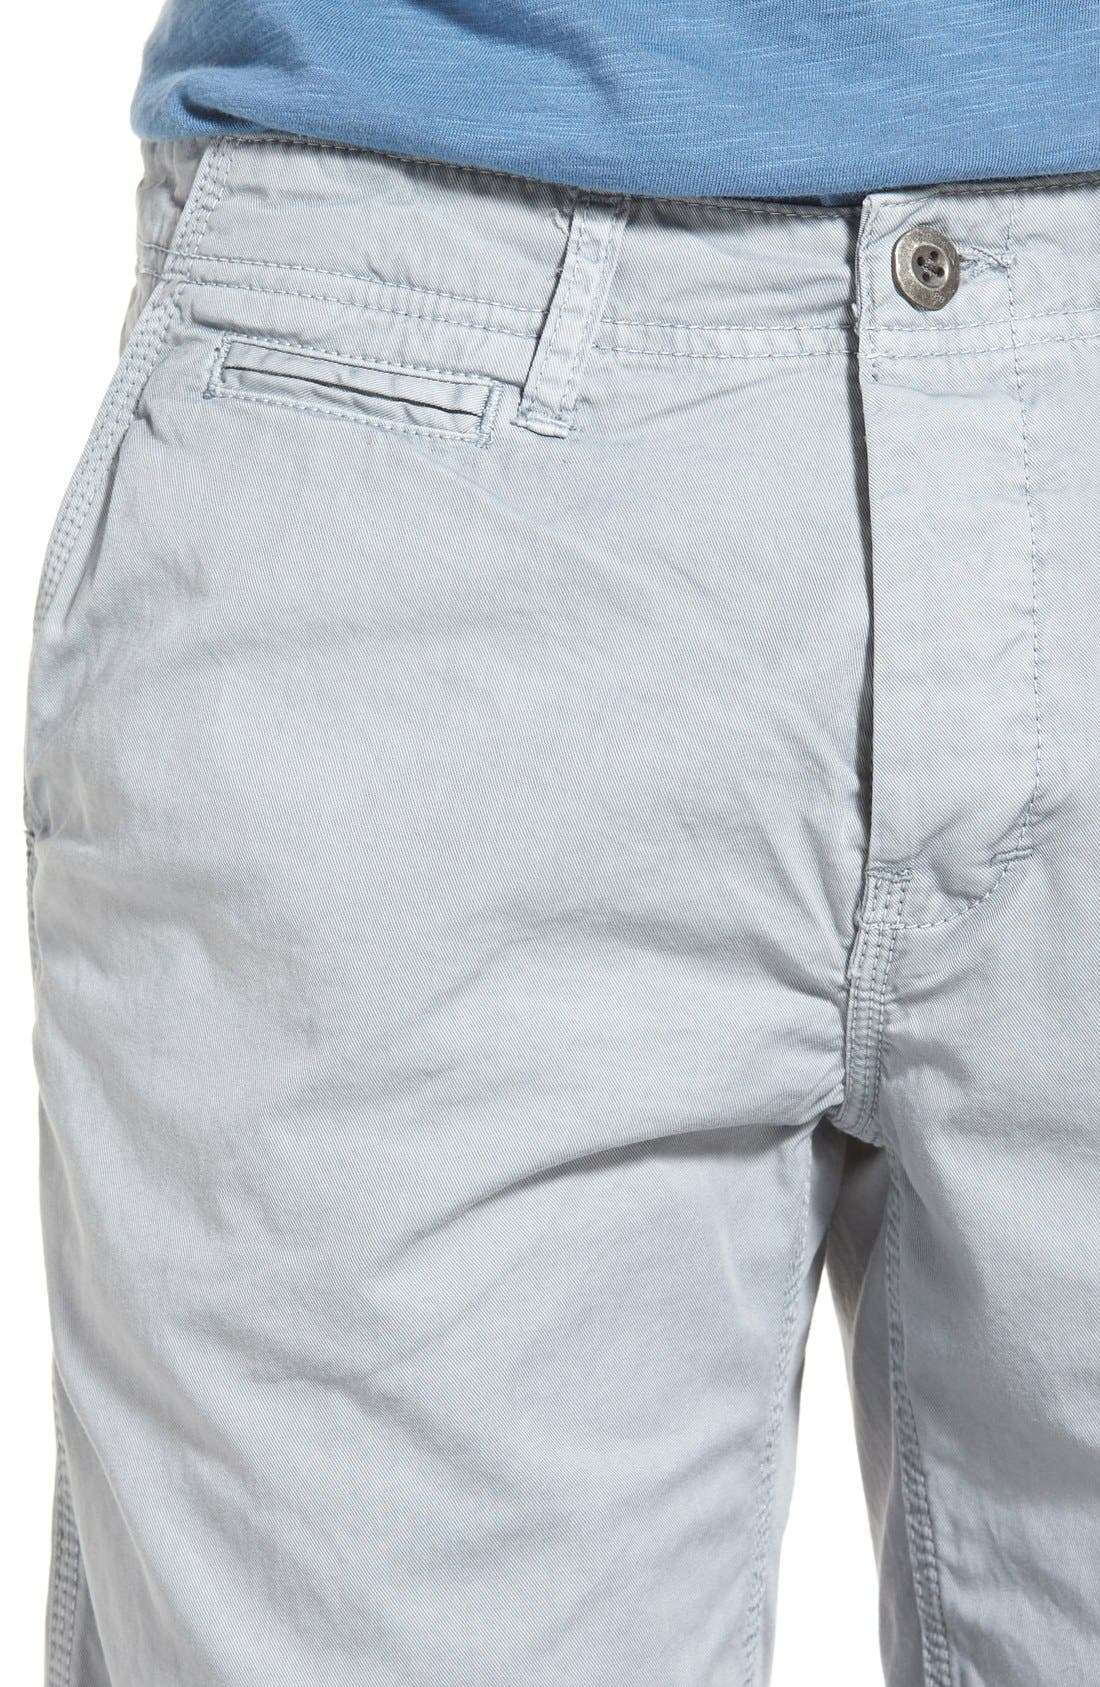 'Napa' Chino Shorts,                             Alternate thumbnail 45, color,